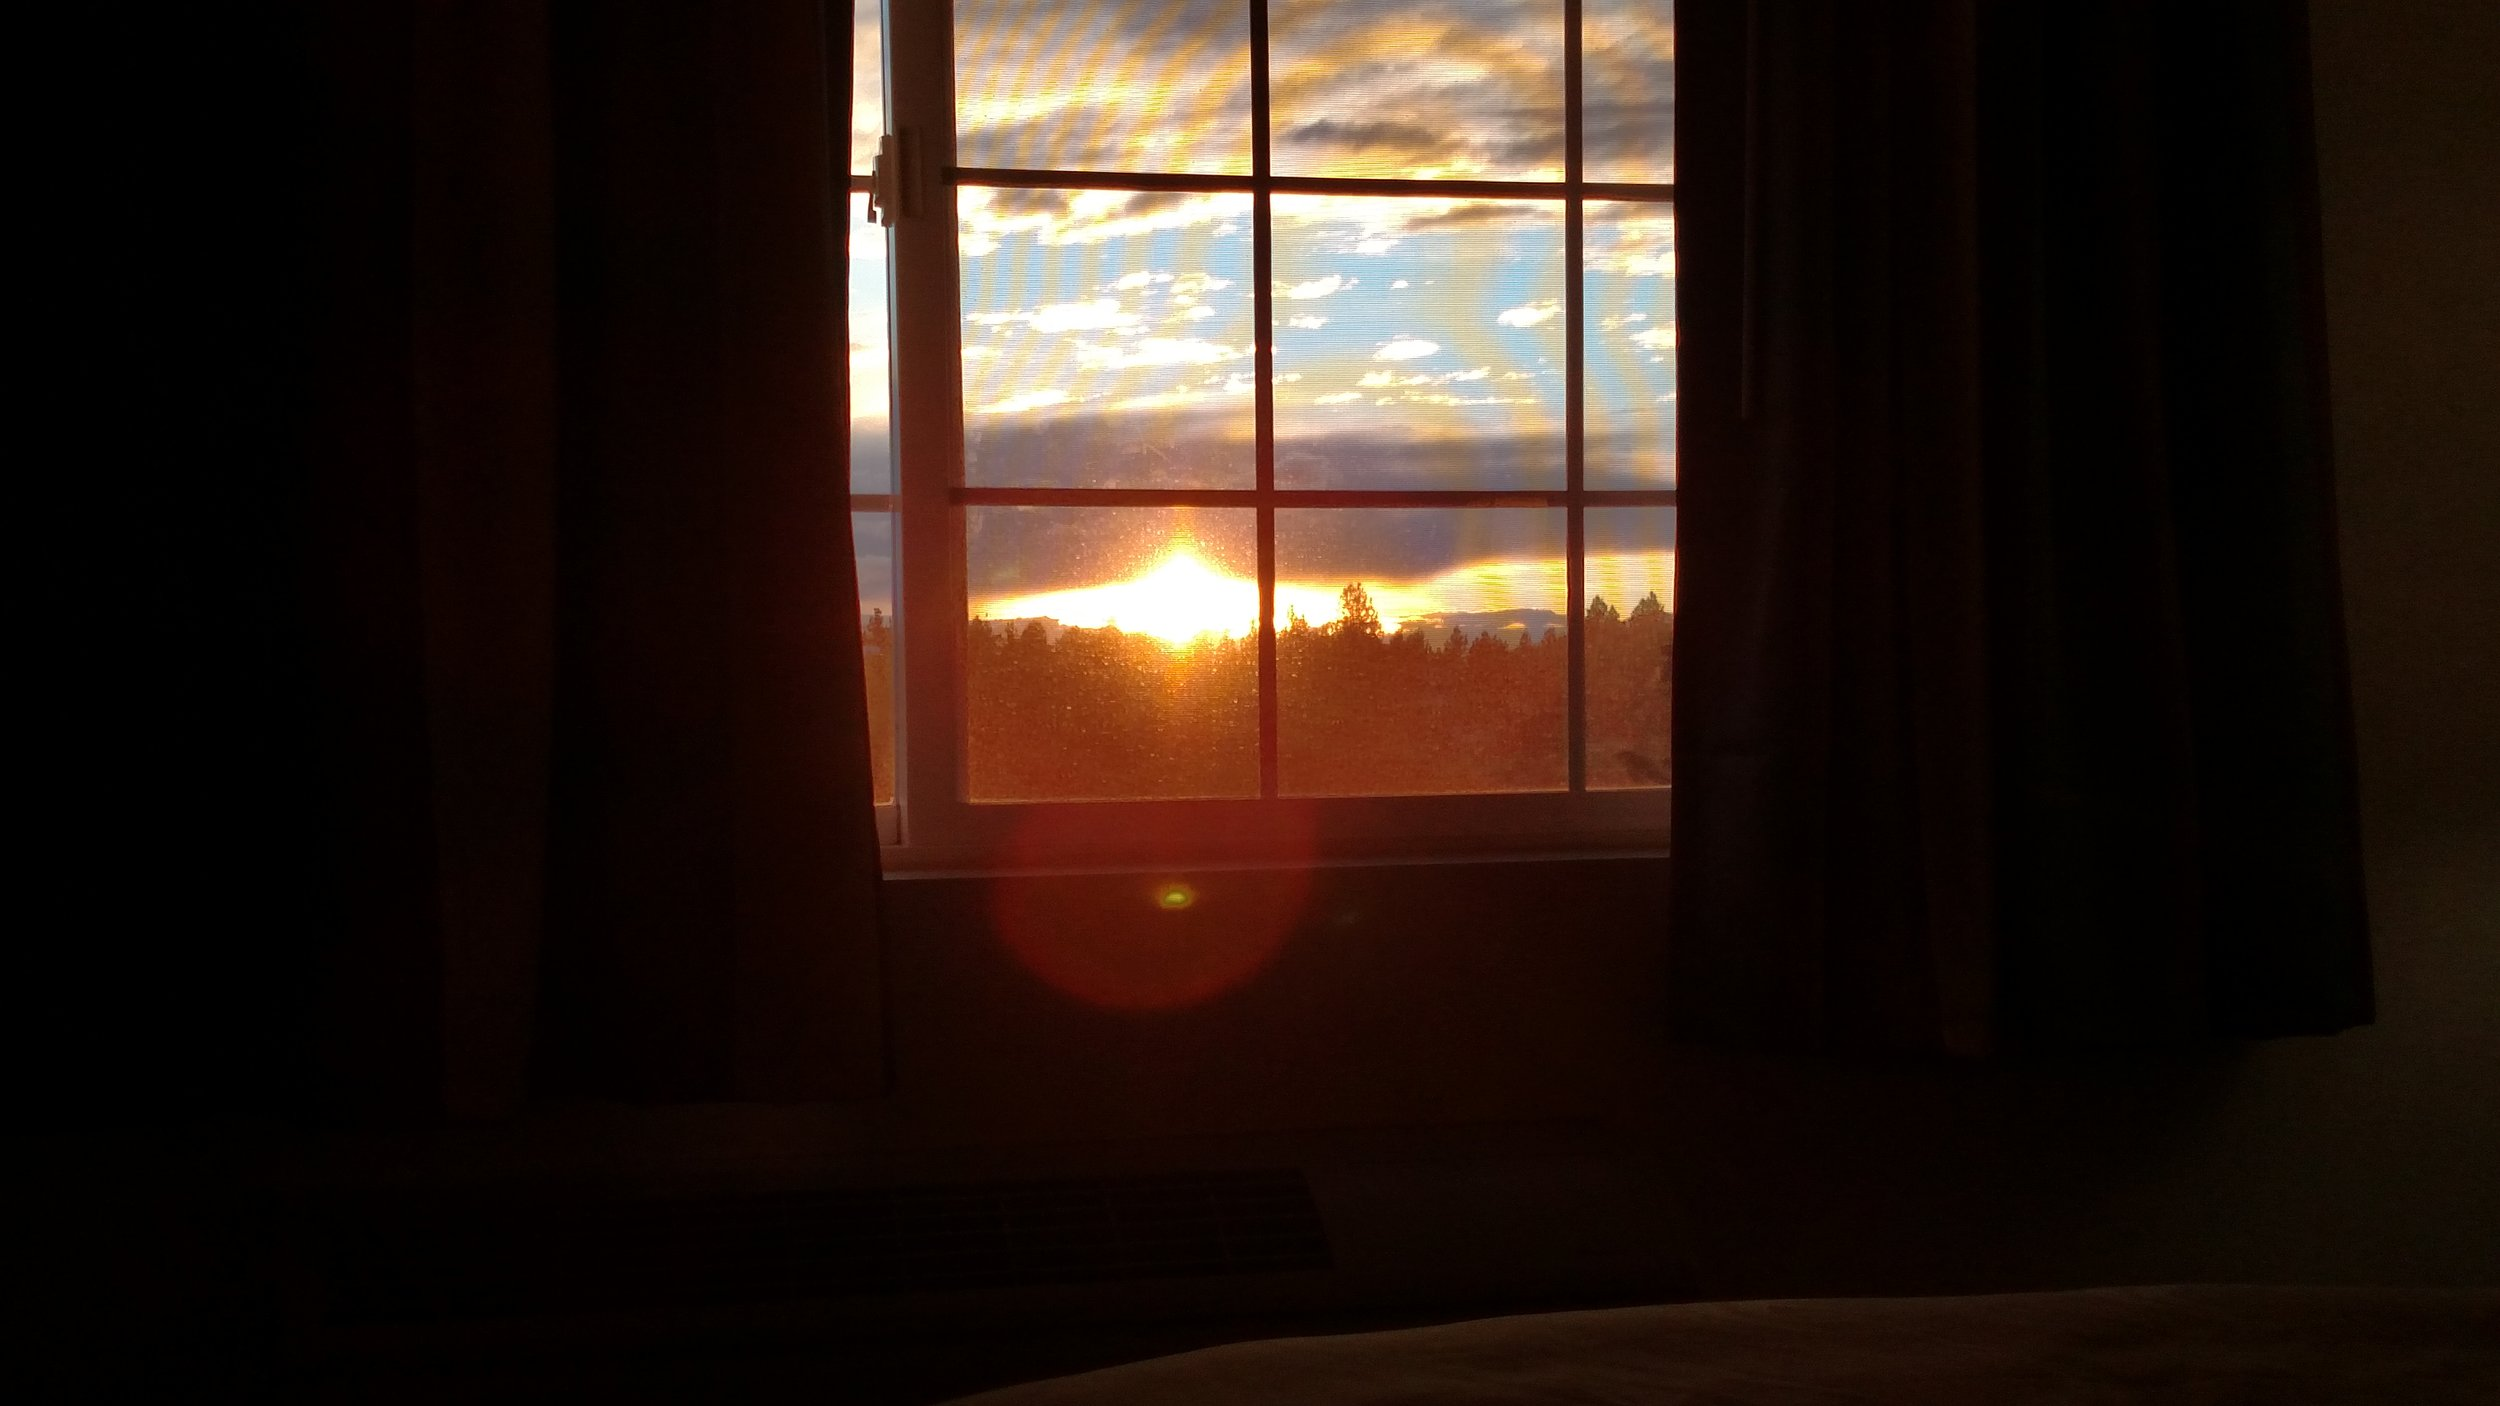 I didn't take a selfie this day, kind of weird because I think I took one every day of the trip up to now. But I did have a nice view of the sunset from my much nicer room at the Quality Inn (I realized later that you could also see The Sisters from my window which was pretty cool.)